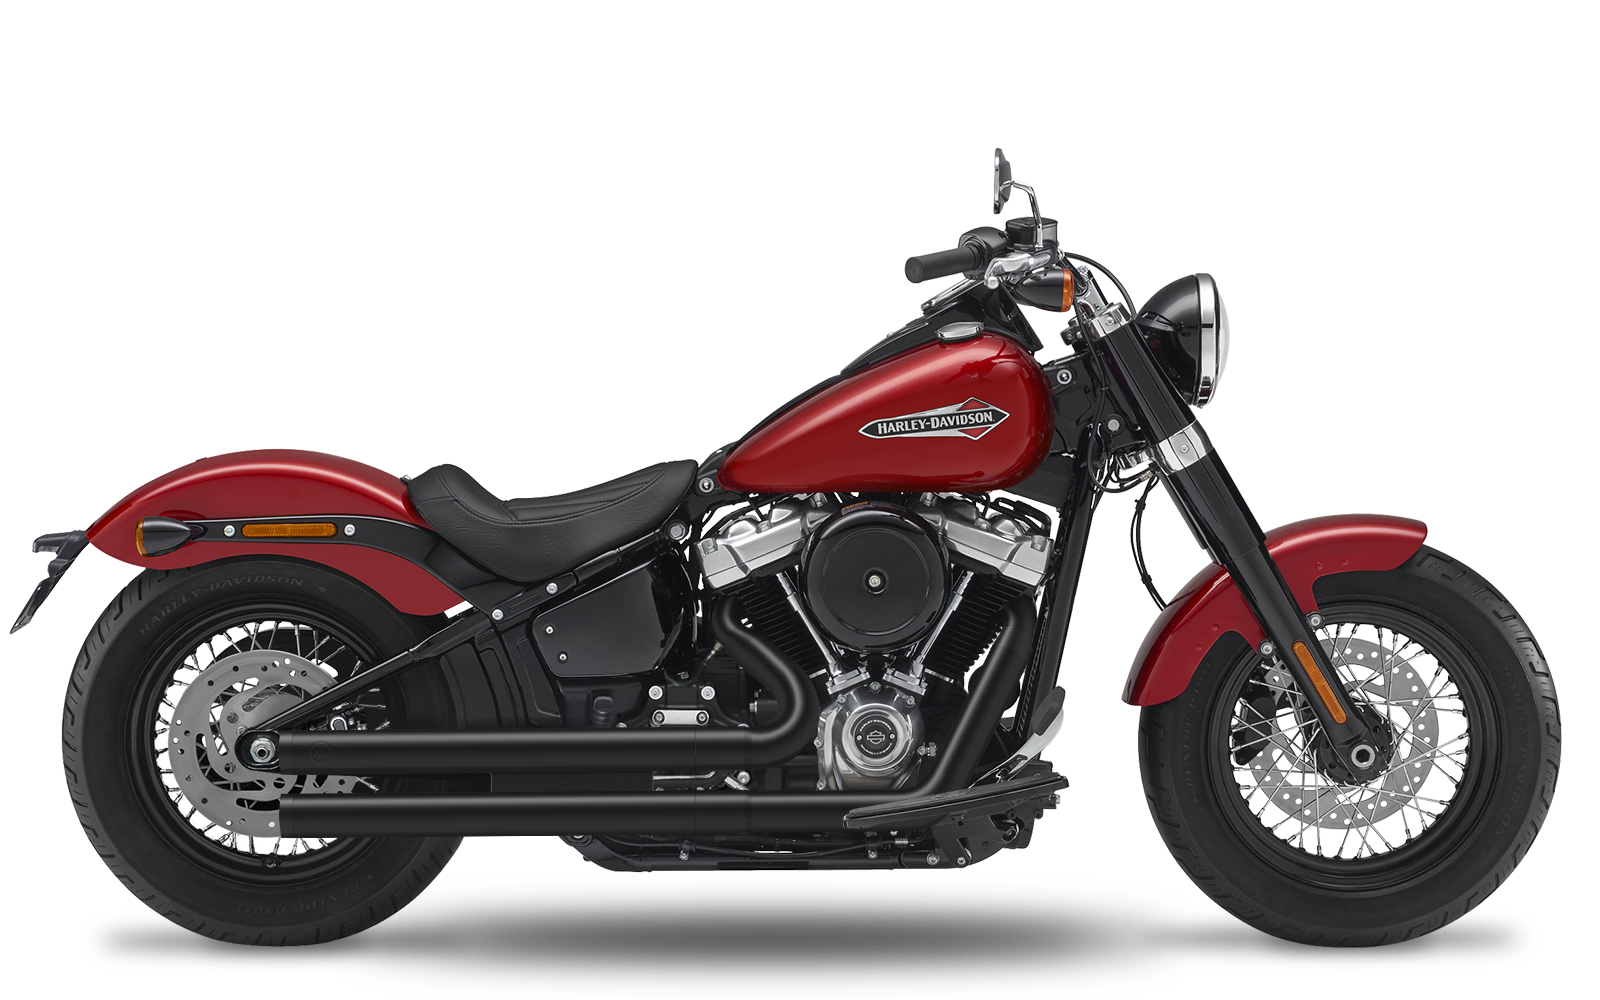 Softail - Low Rider - ME107 - 2018-2020 - Complete systems